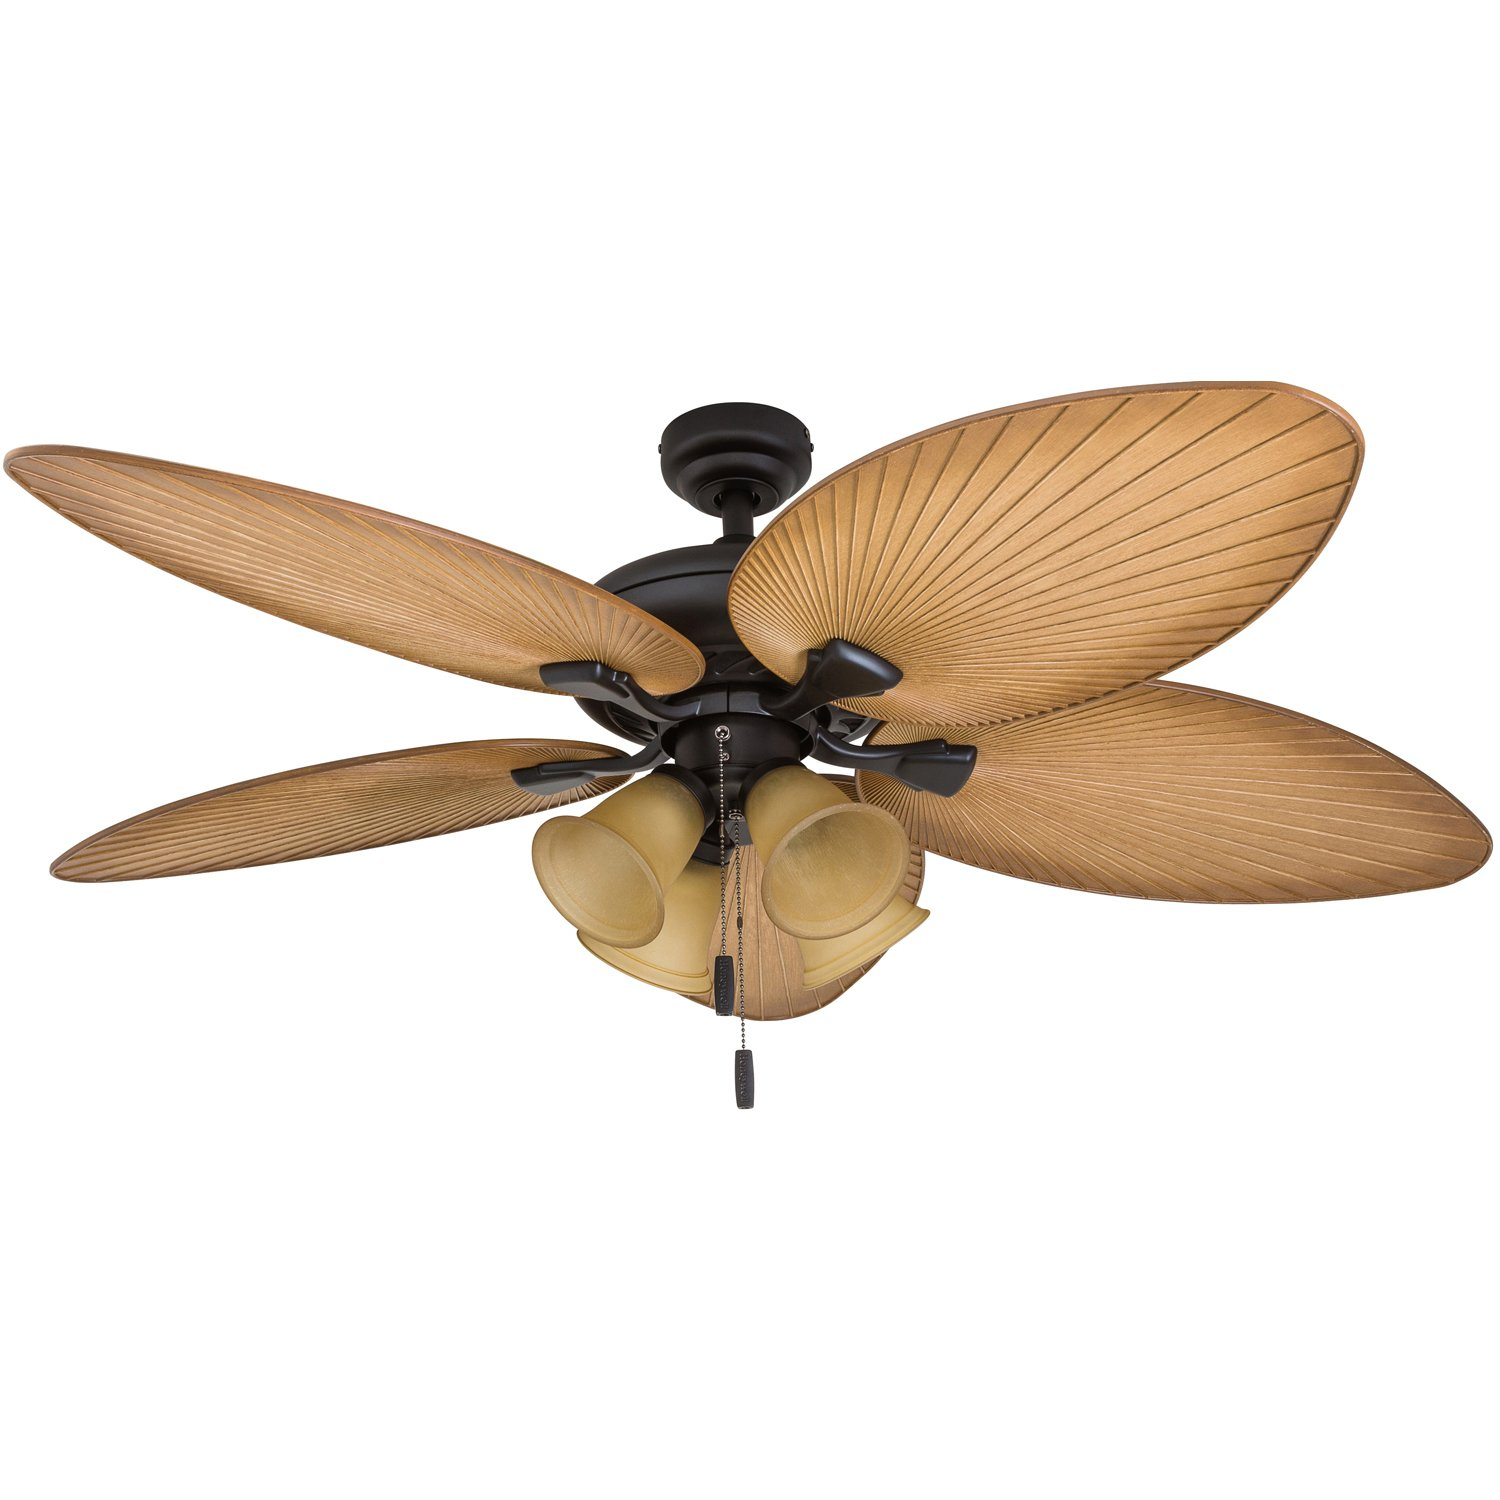 "Honeywell Ceiling Fans 50506-01 Palm Lake 52"" Ceiling Fan Sandstone"